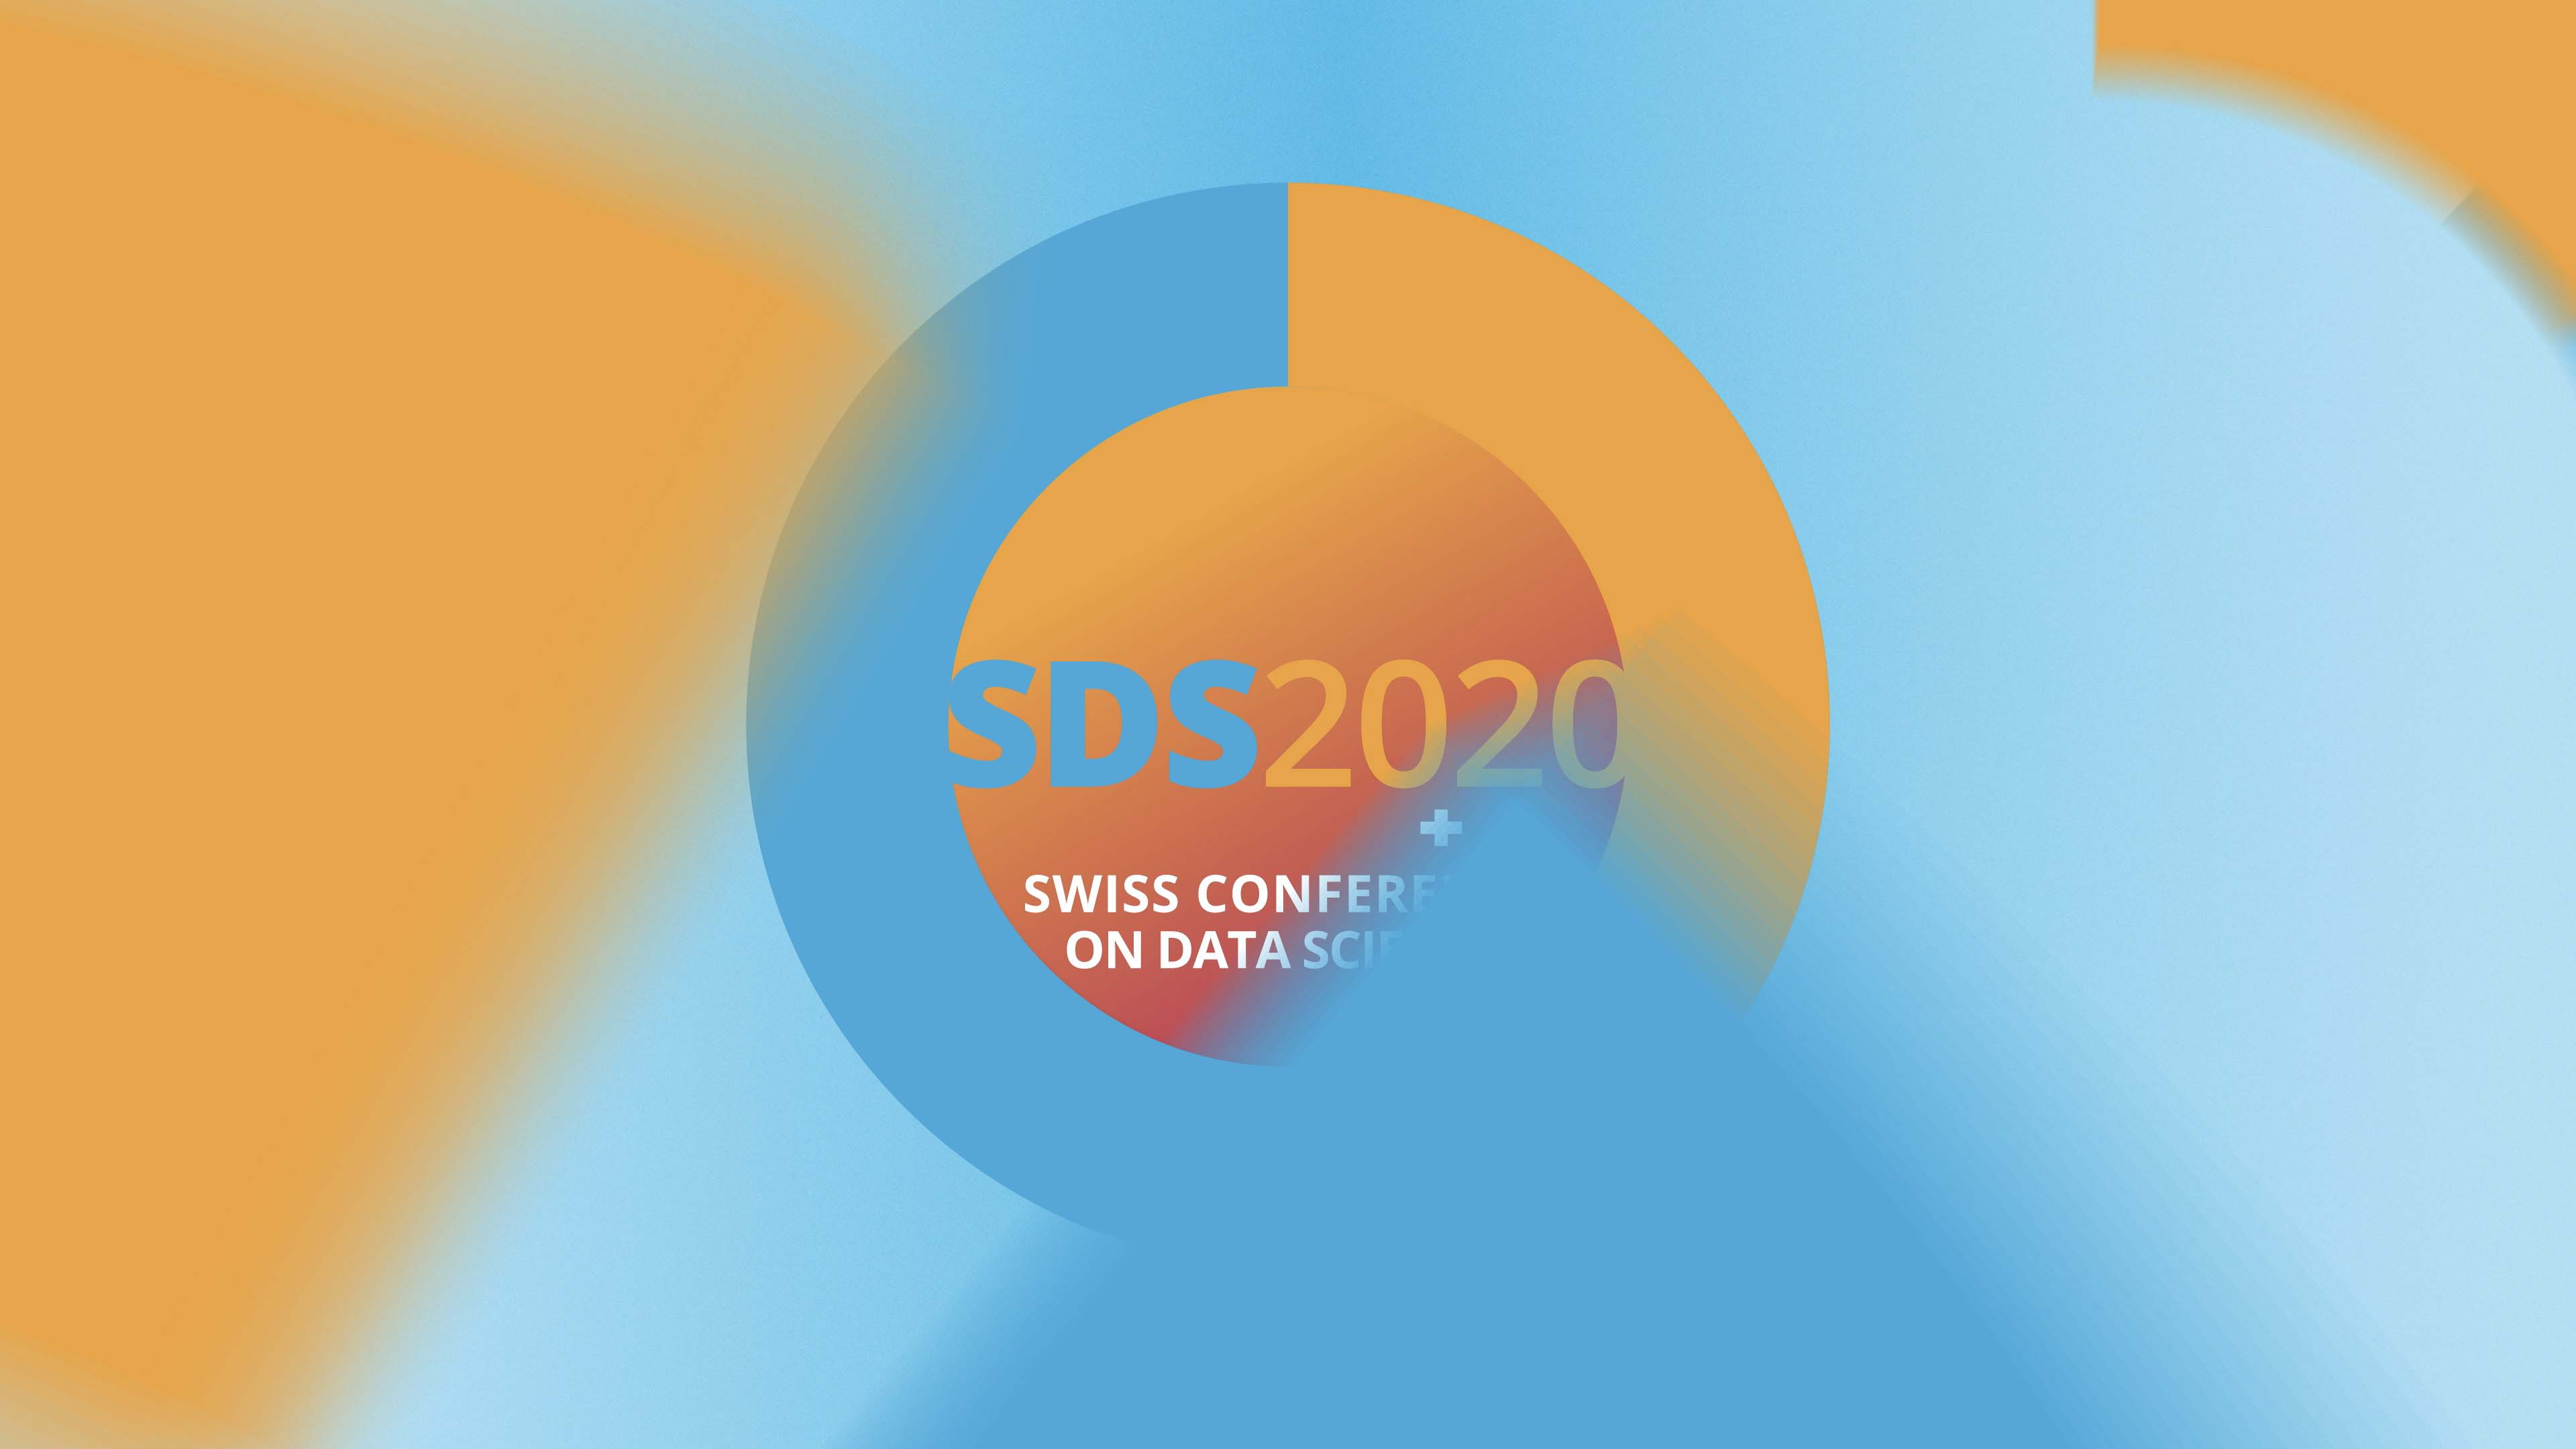 SDS Swiss Conference on Data Science